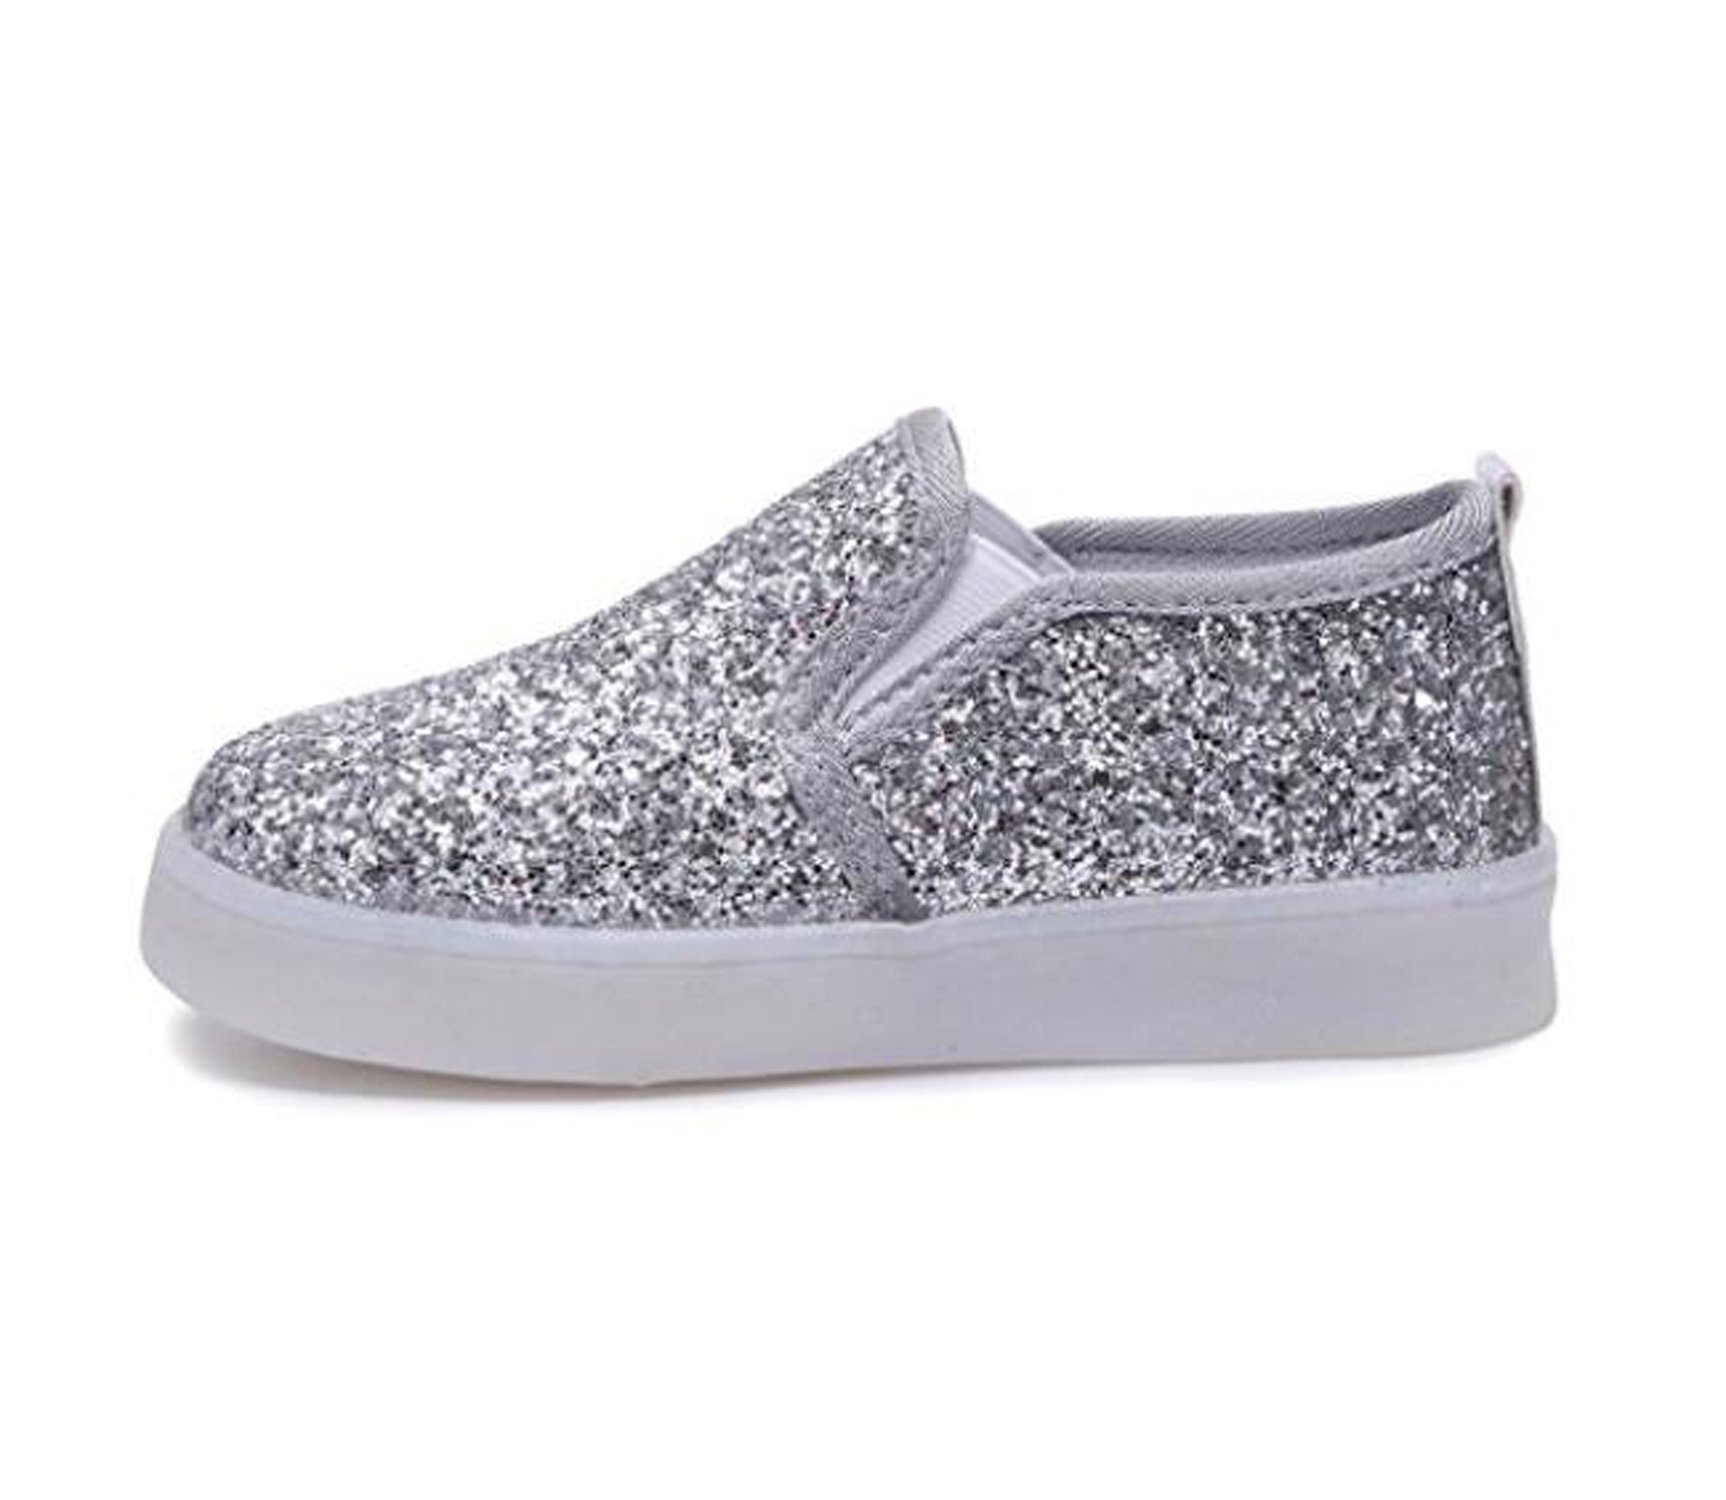 Otamise Girls' Light up Sequins Shoes Slip-on Flashing LED Casual Loafers Flat Sneakers (Toddler/Little Kid) (7M US Toddler, Sequins Silver)